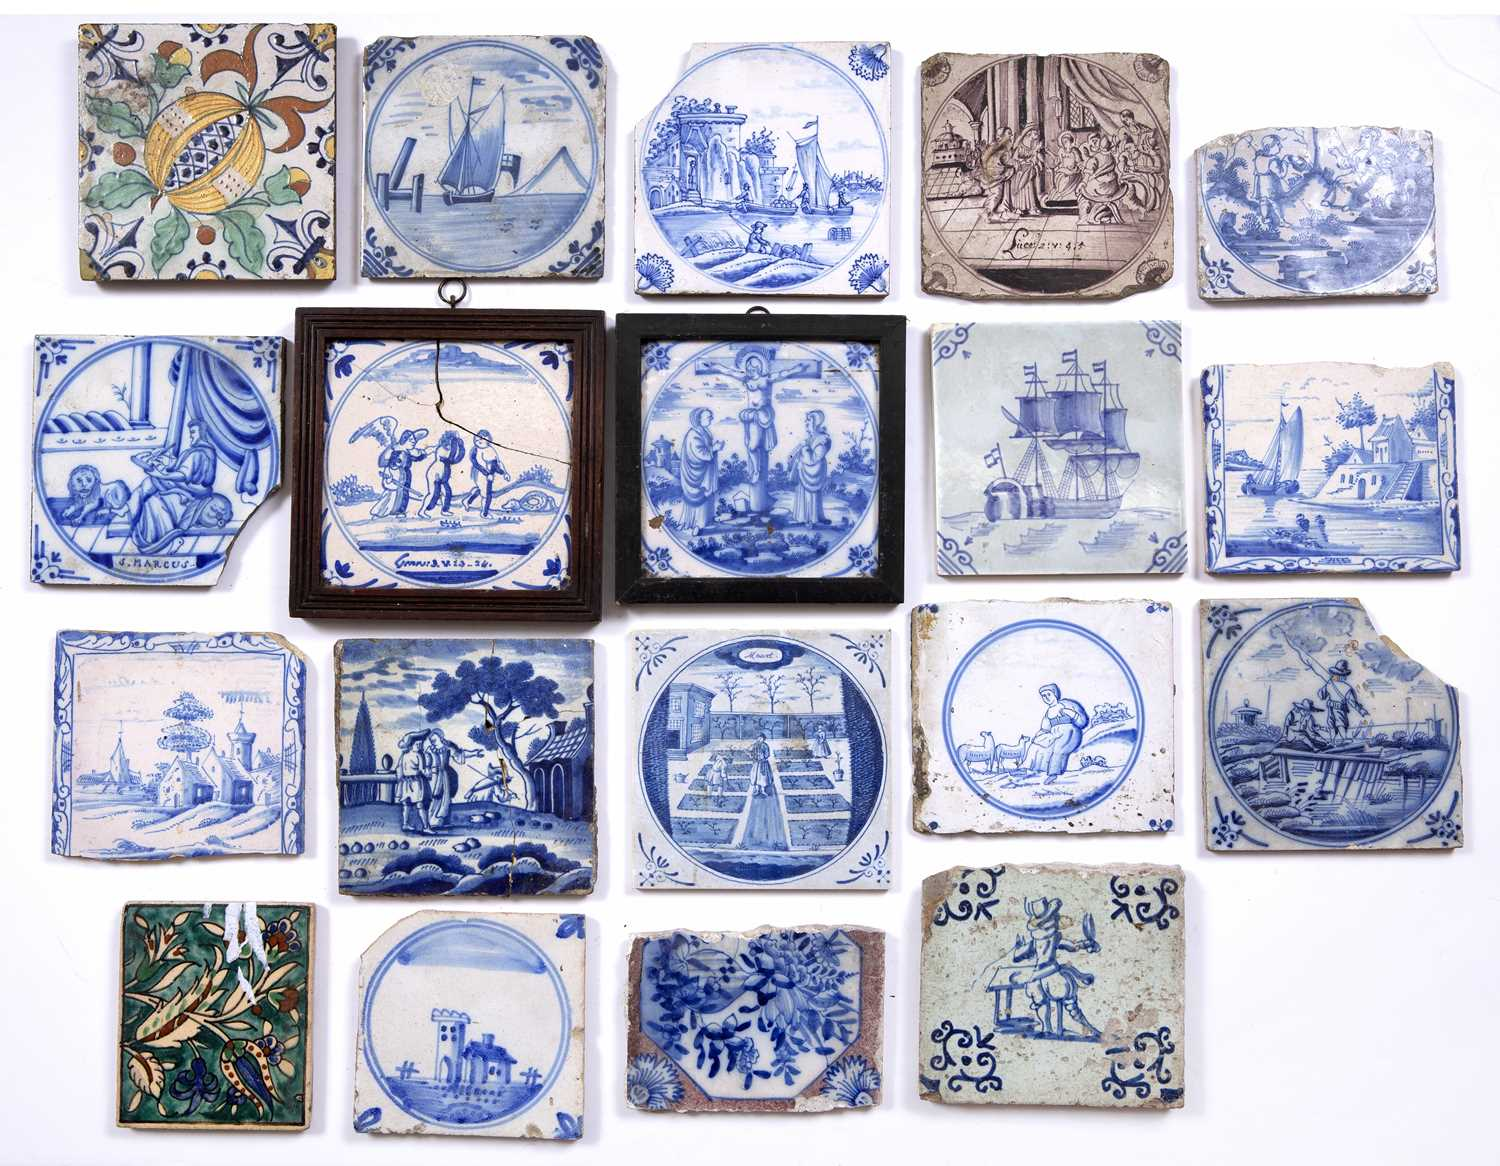 A group of nineteen 17th/19th century Delft and other tiles and tile fragments, mainly blue and